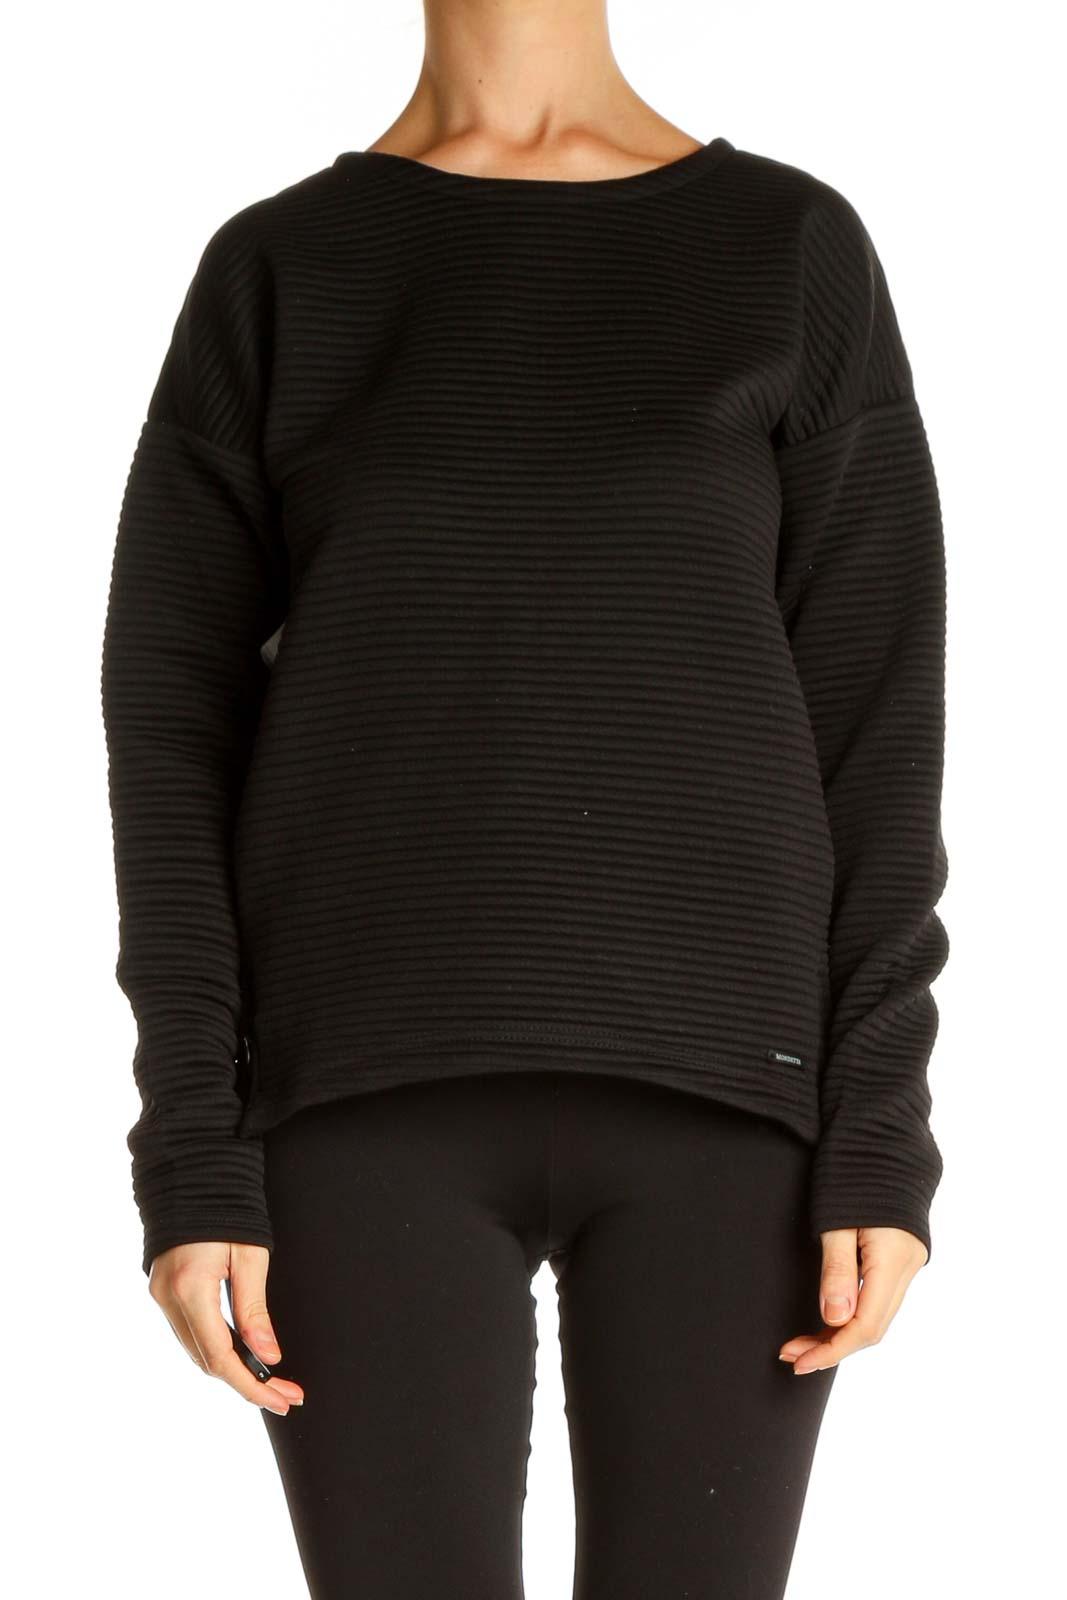 Black Sweatshirt Front